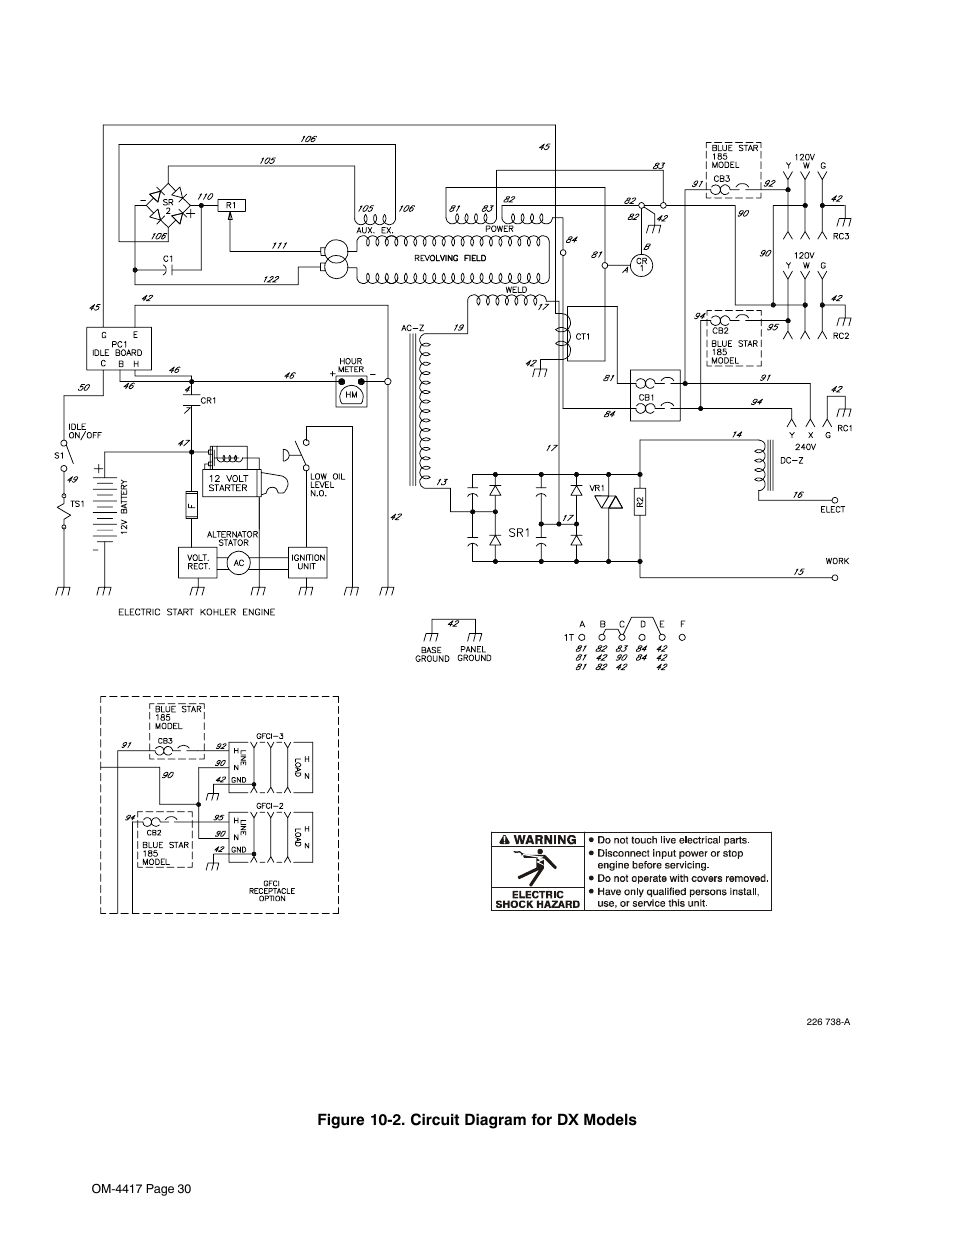 Potentiometer Wiring Diagram For Miller Welder Smart Diagrams 220v Syncrowave 250 Dayton